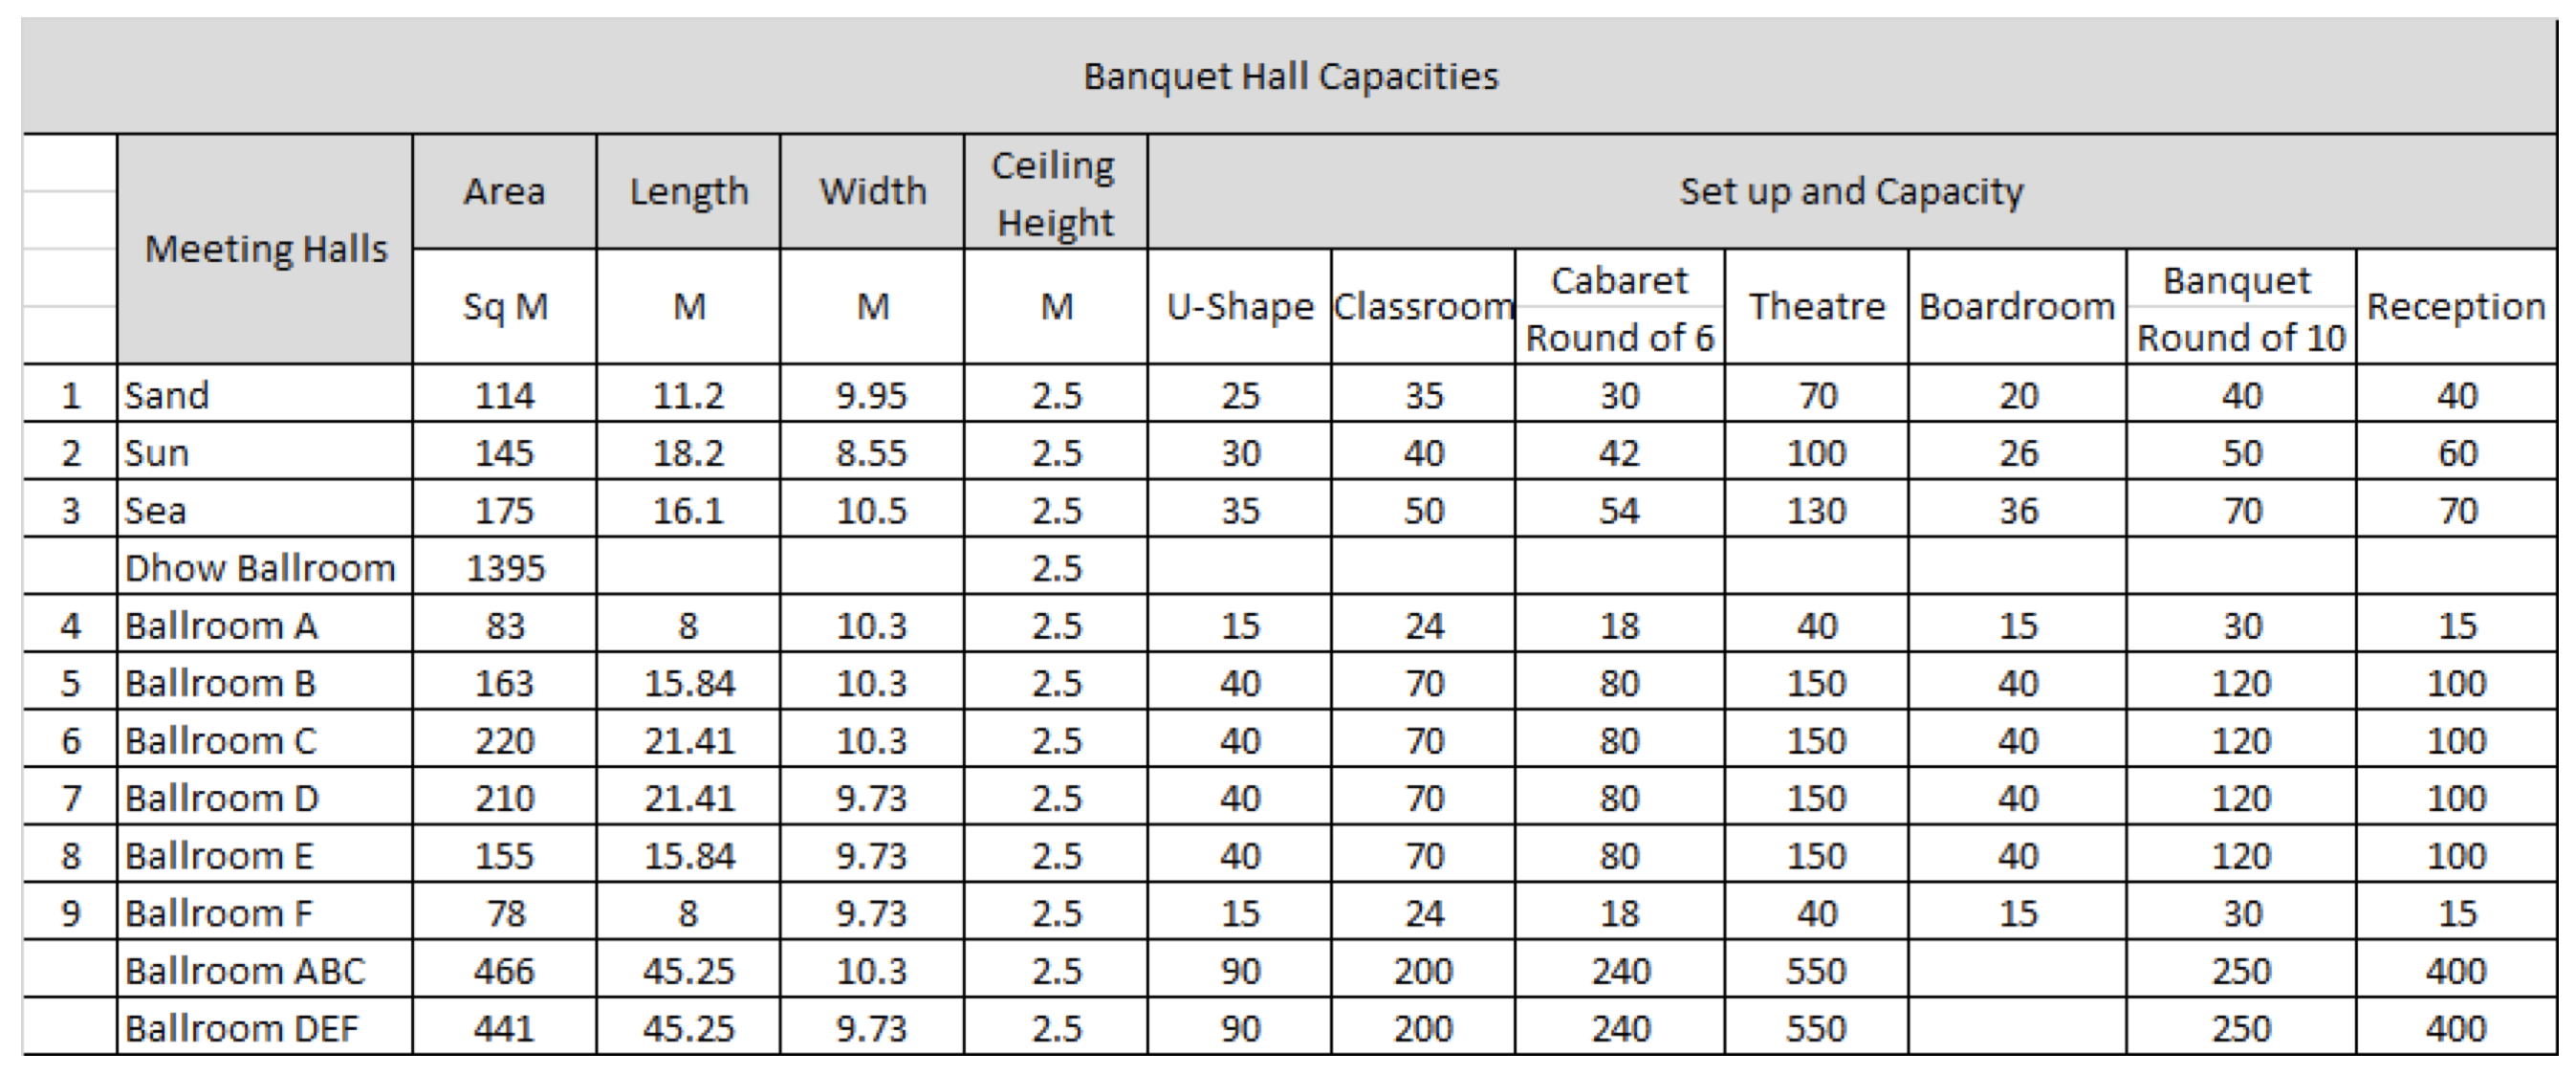 Banquet Hall Capacities